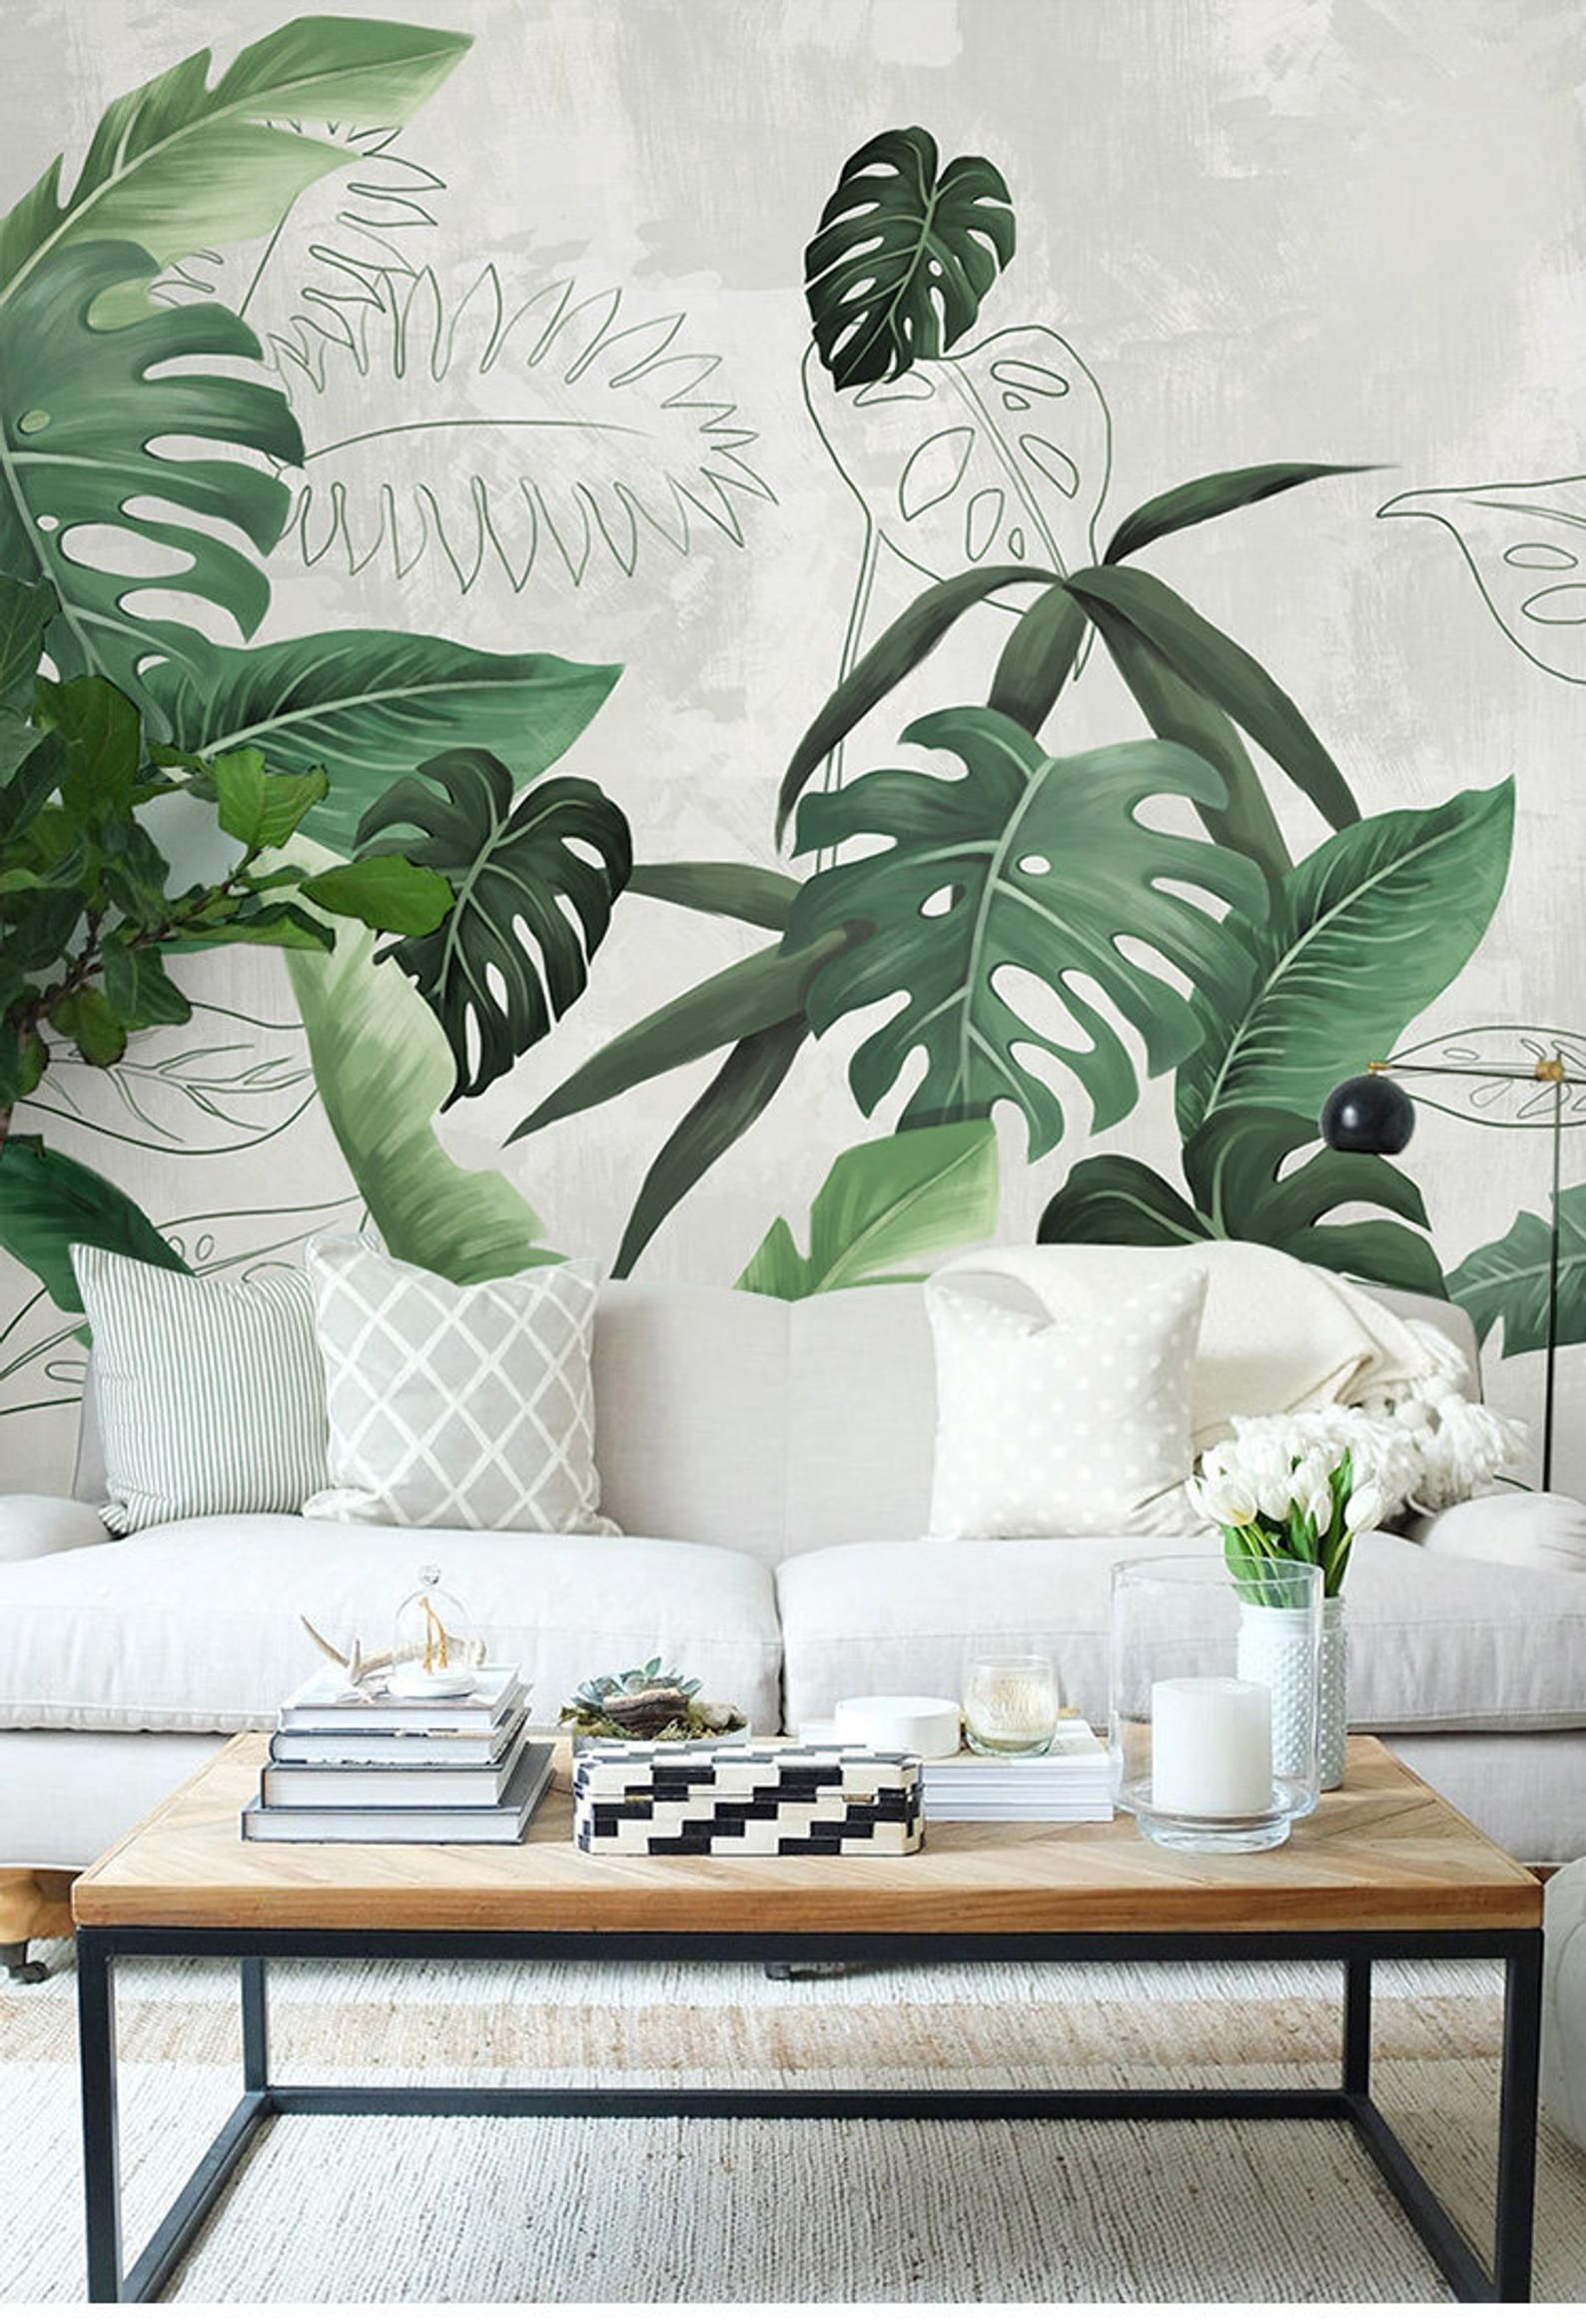 Southeast Asian Rainforest Plant Wall Murals Wall Decor Green Leaves Shrub Wallpaper Wall Mural Tropical Landscape Wallpaper Tree Wall Murals Rainforest Plants Landscape Wallpaper